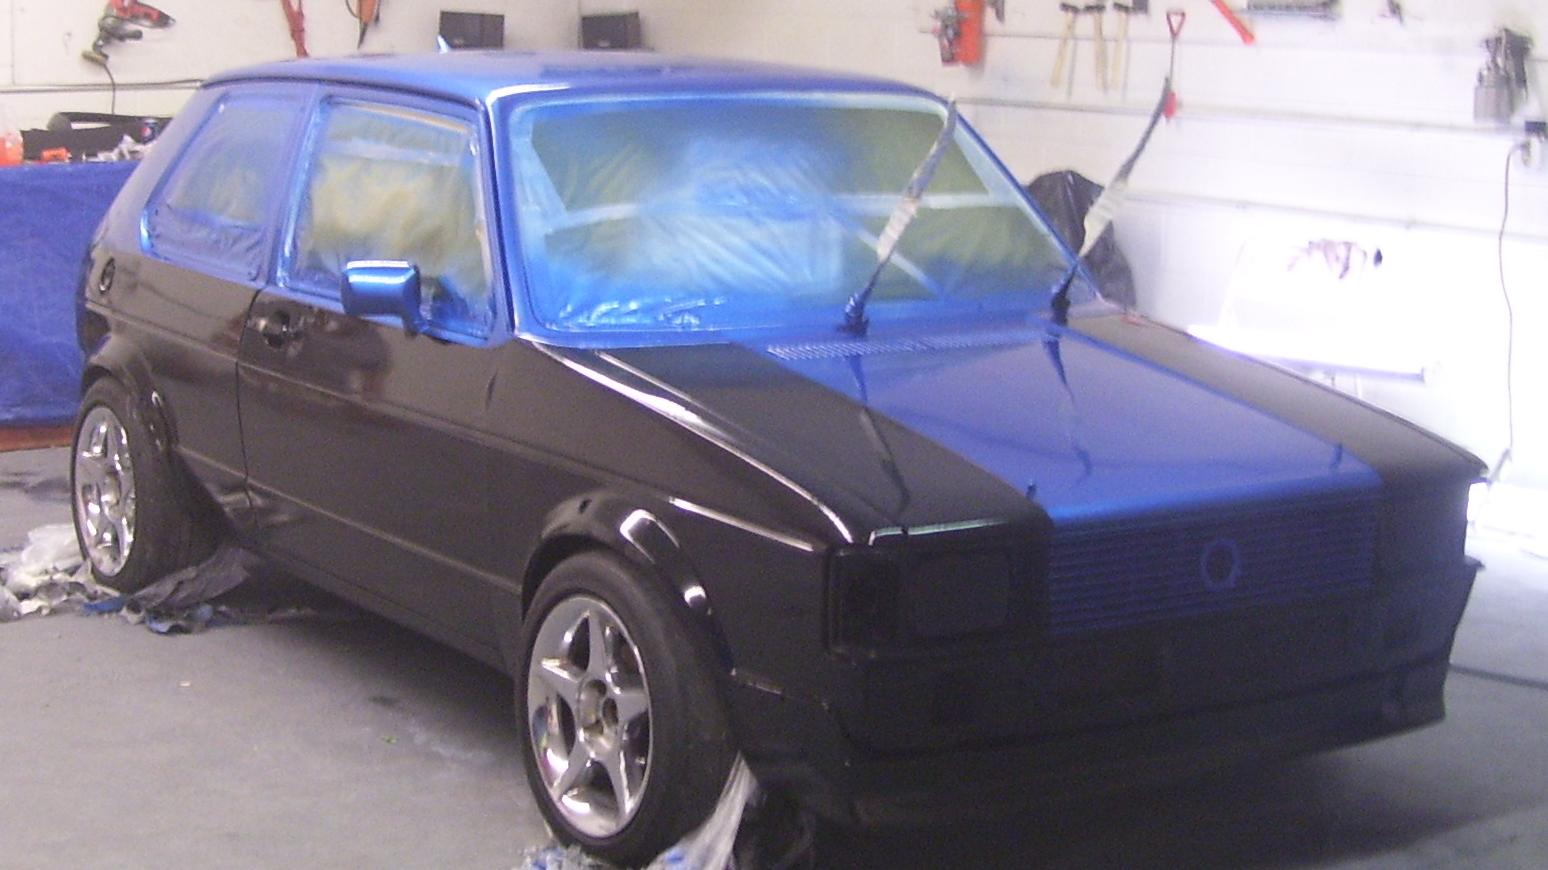 THESMOKEYRABBIT's 1984 Volkswagen Rabbit